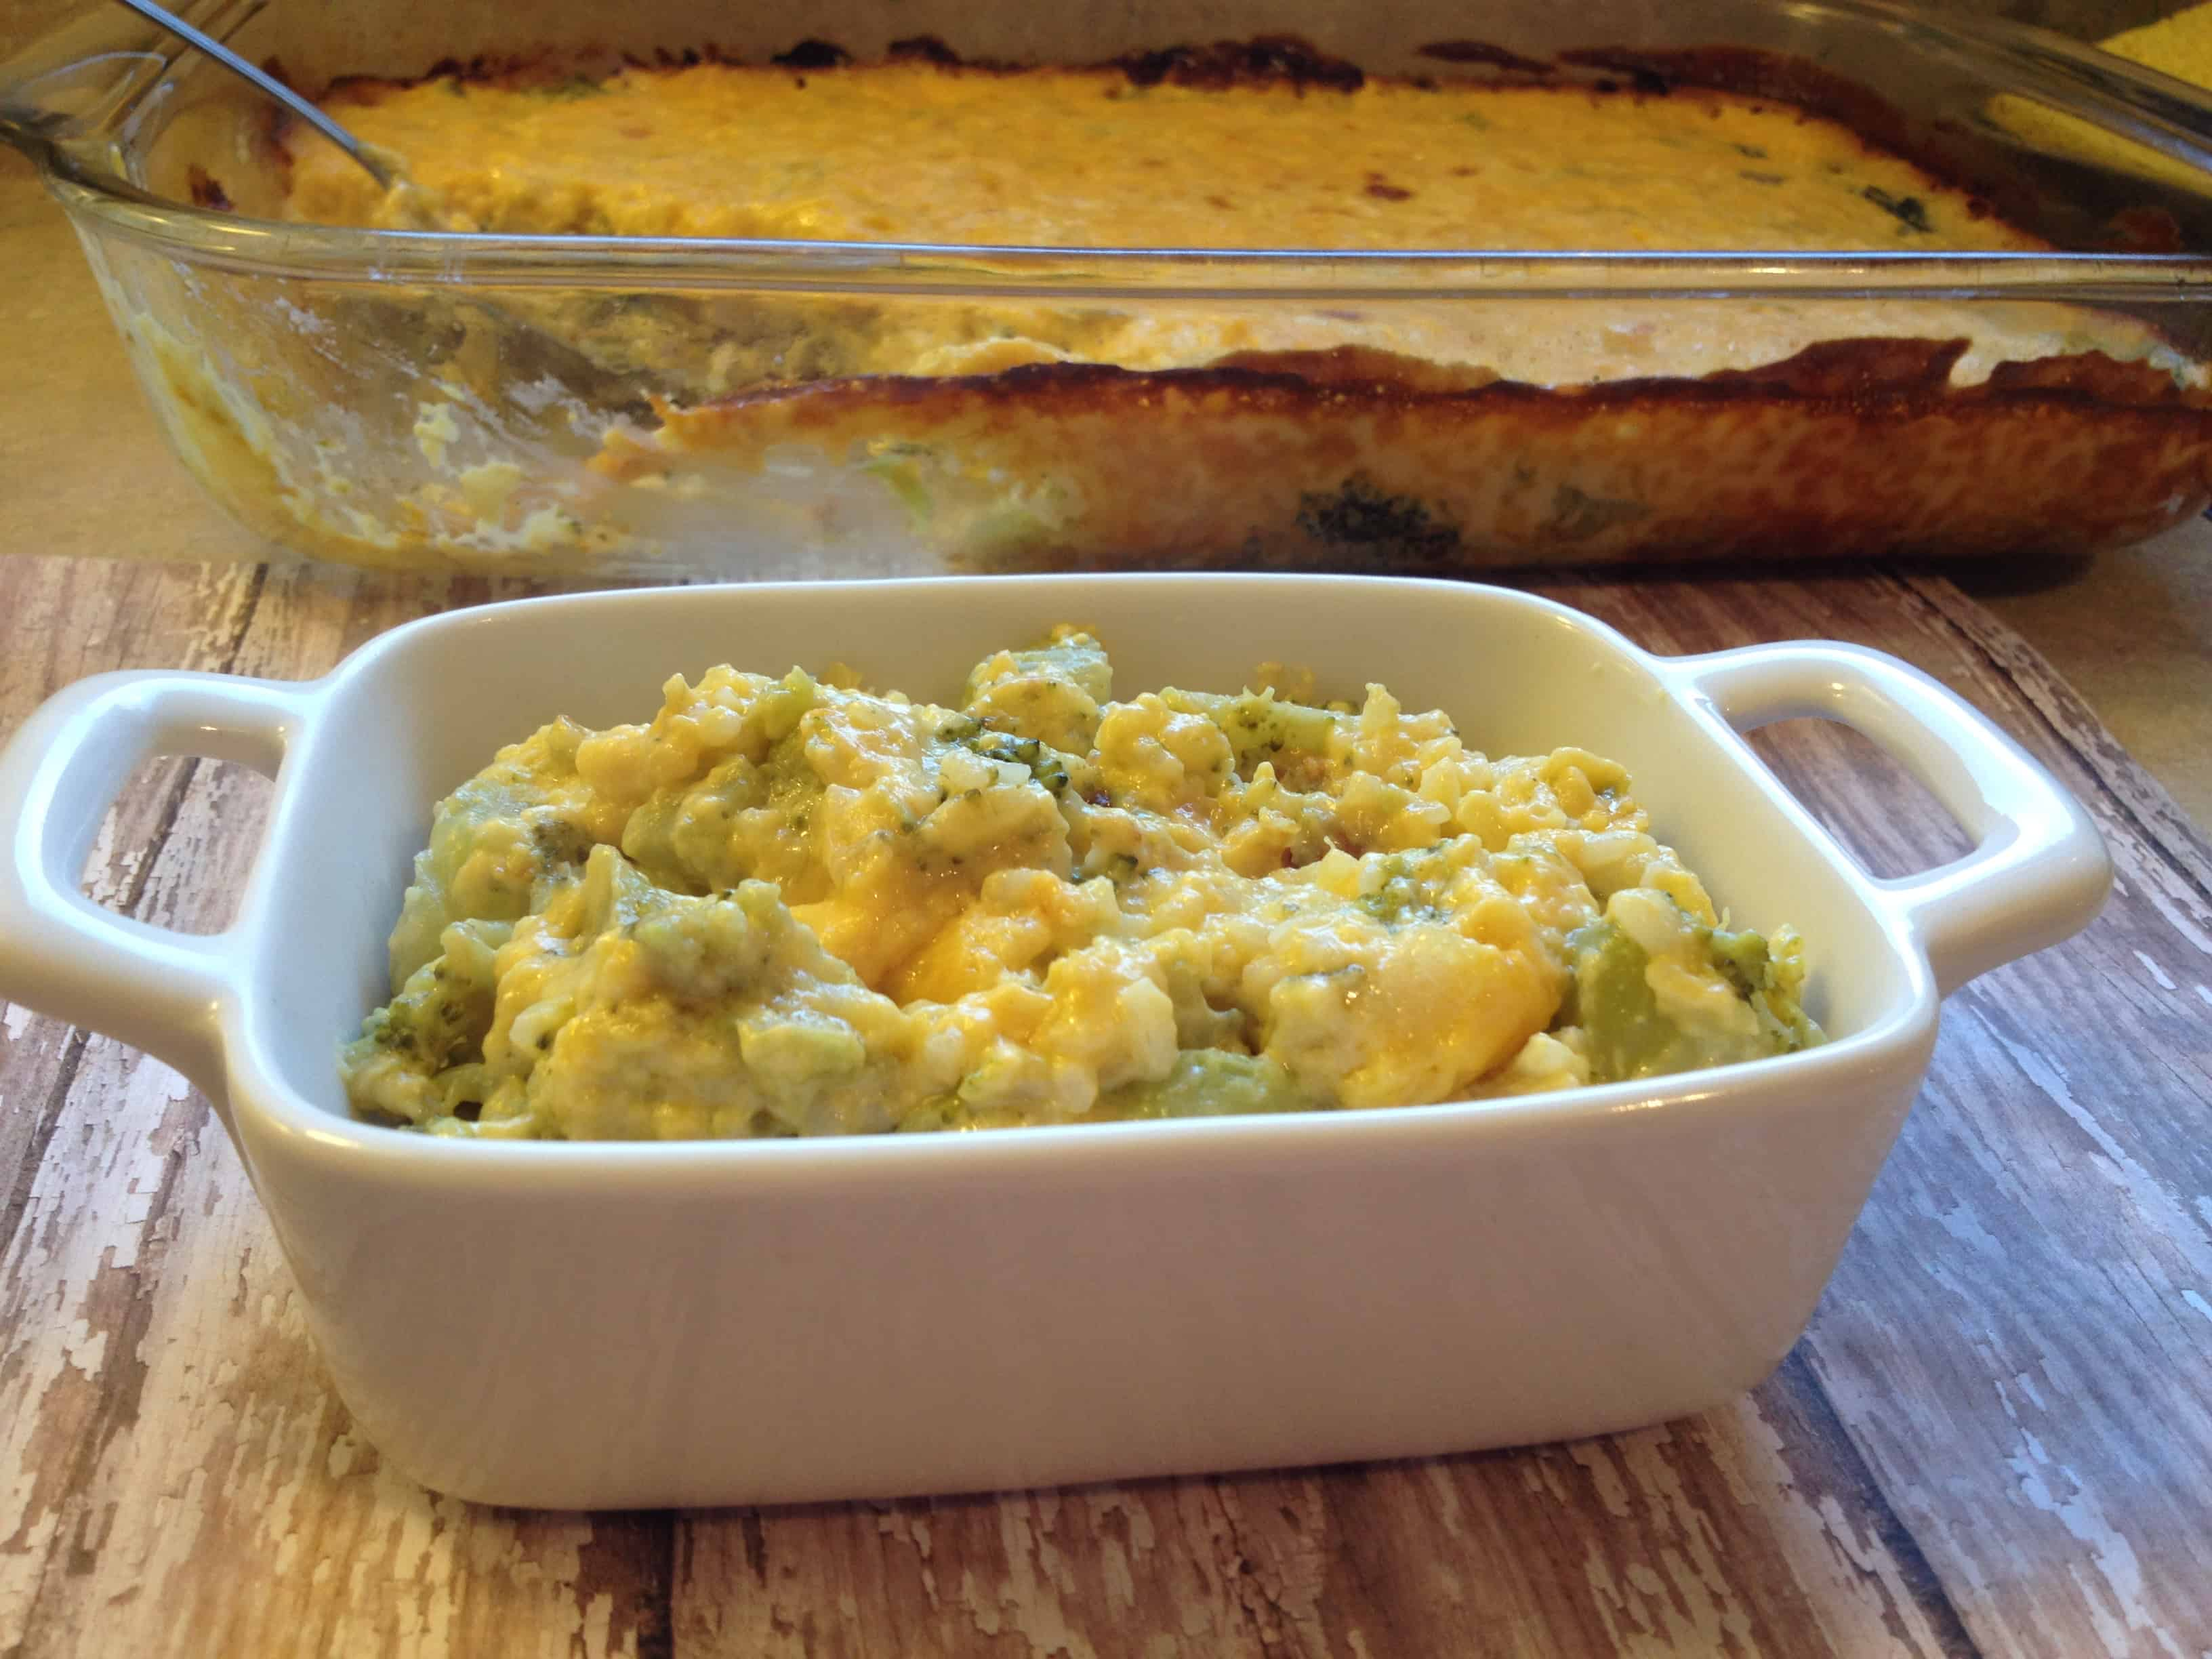 Broccoli Cheese Rice Casserole - The Casual Craftlete - A Creative ...